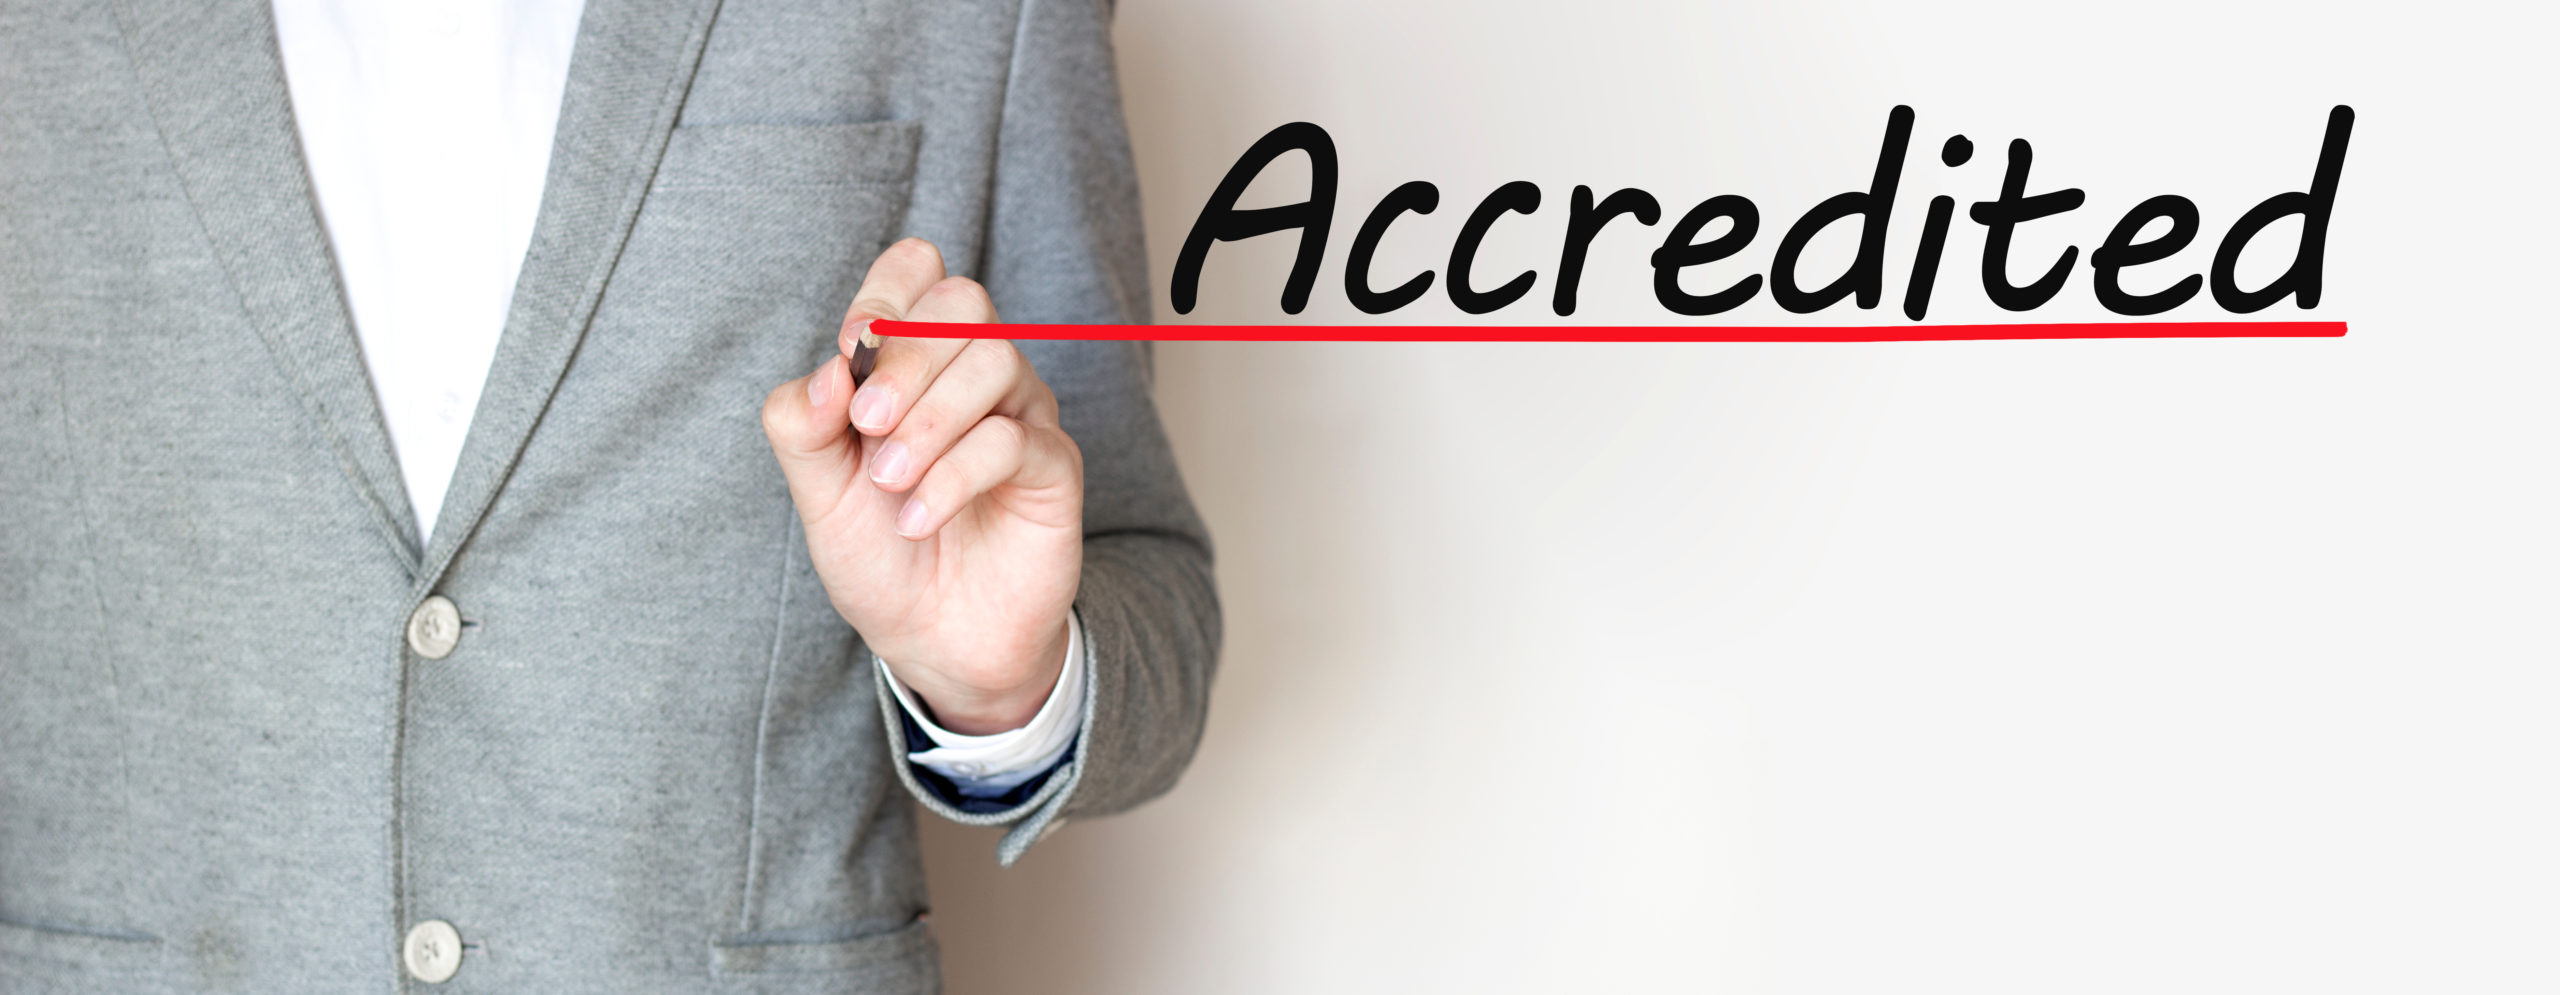 accredited sleep consultant certification programs